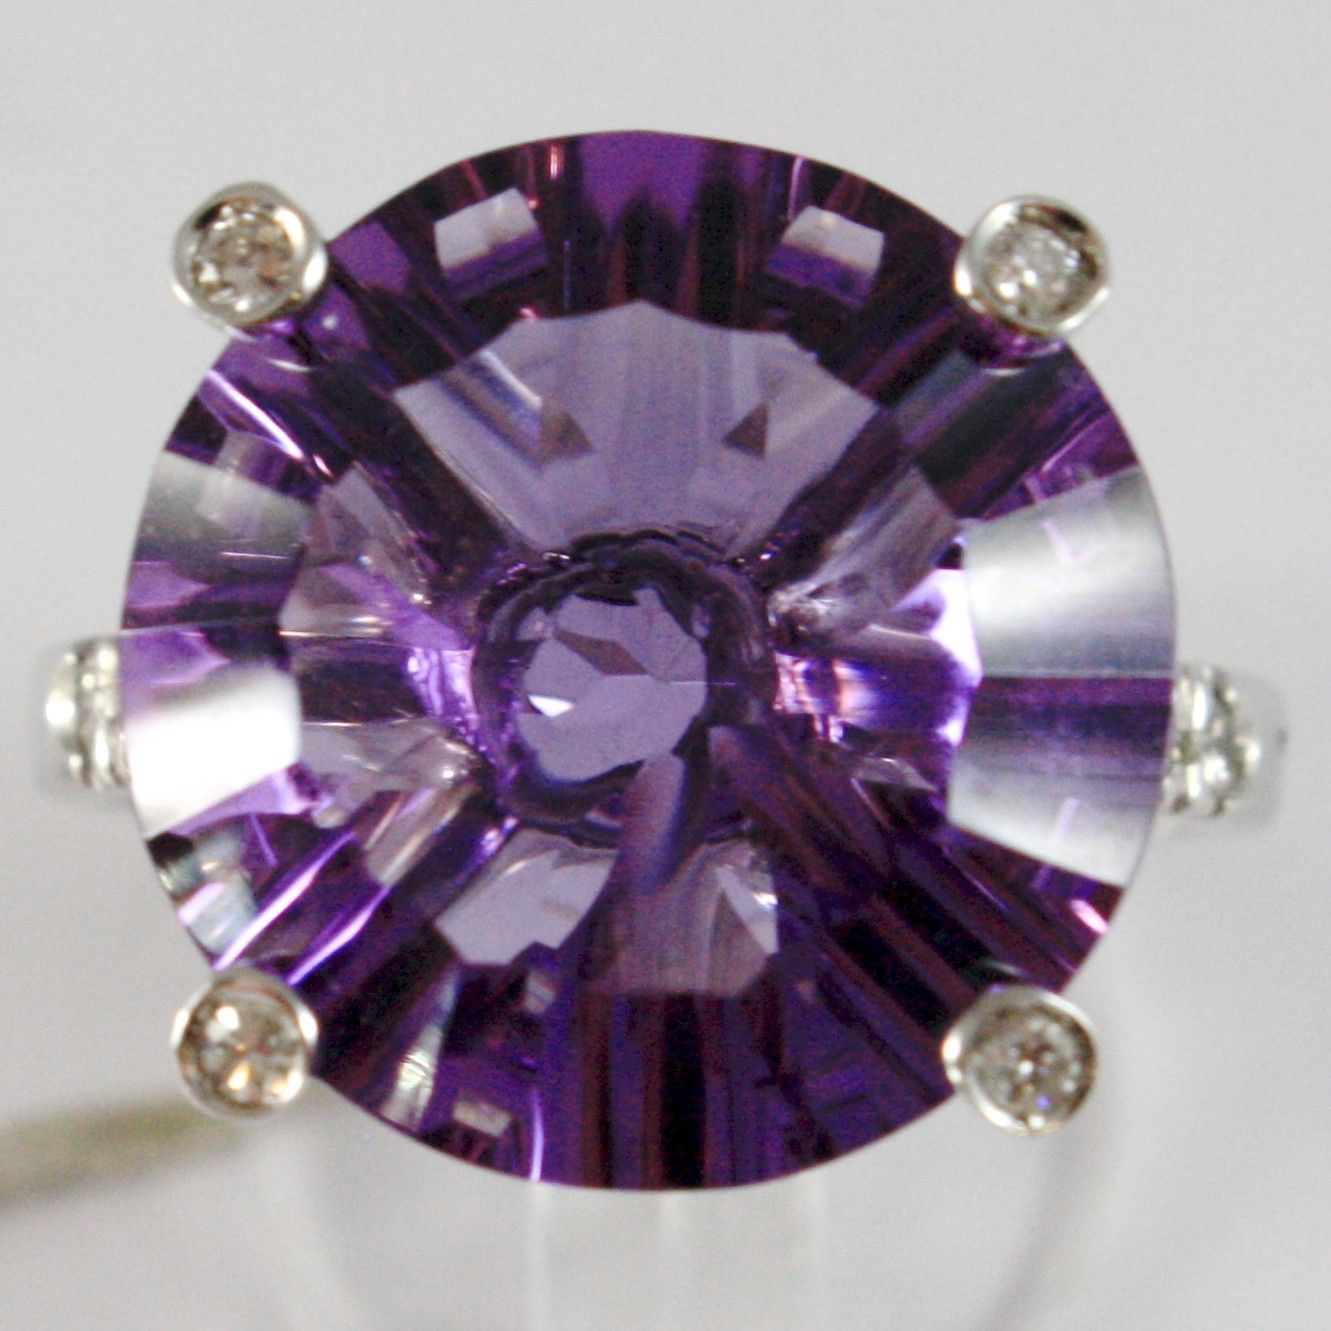 WHITE GOLD RING 750 18K, WITH AMETHYST ROUND CT 11.5, AND DIAMONDS CT 0.21